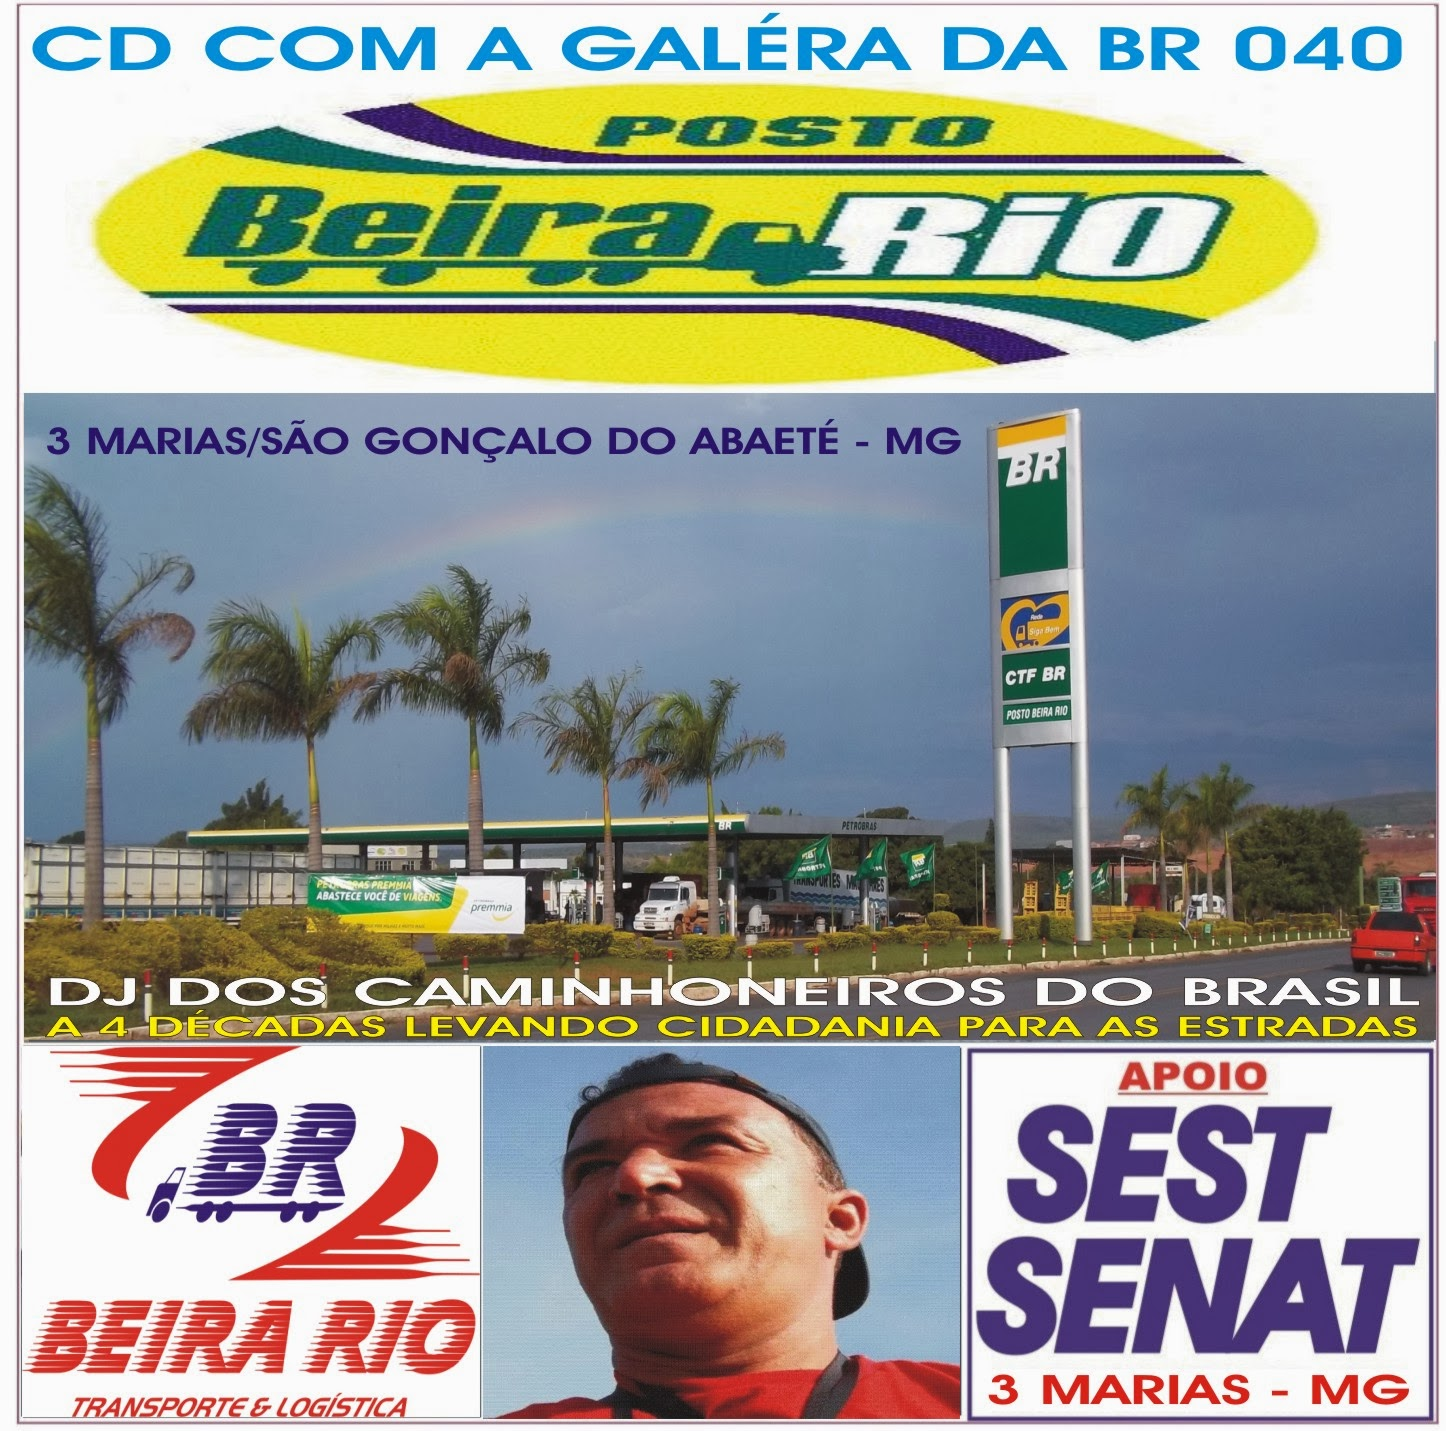 CD DO POSTO BEIRA RIO